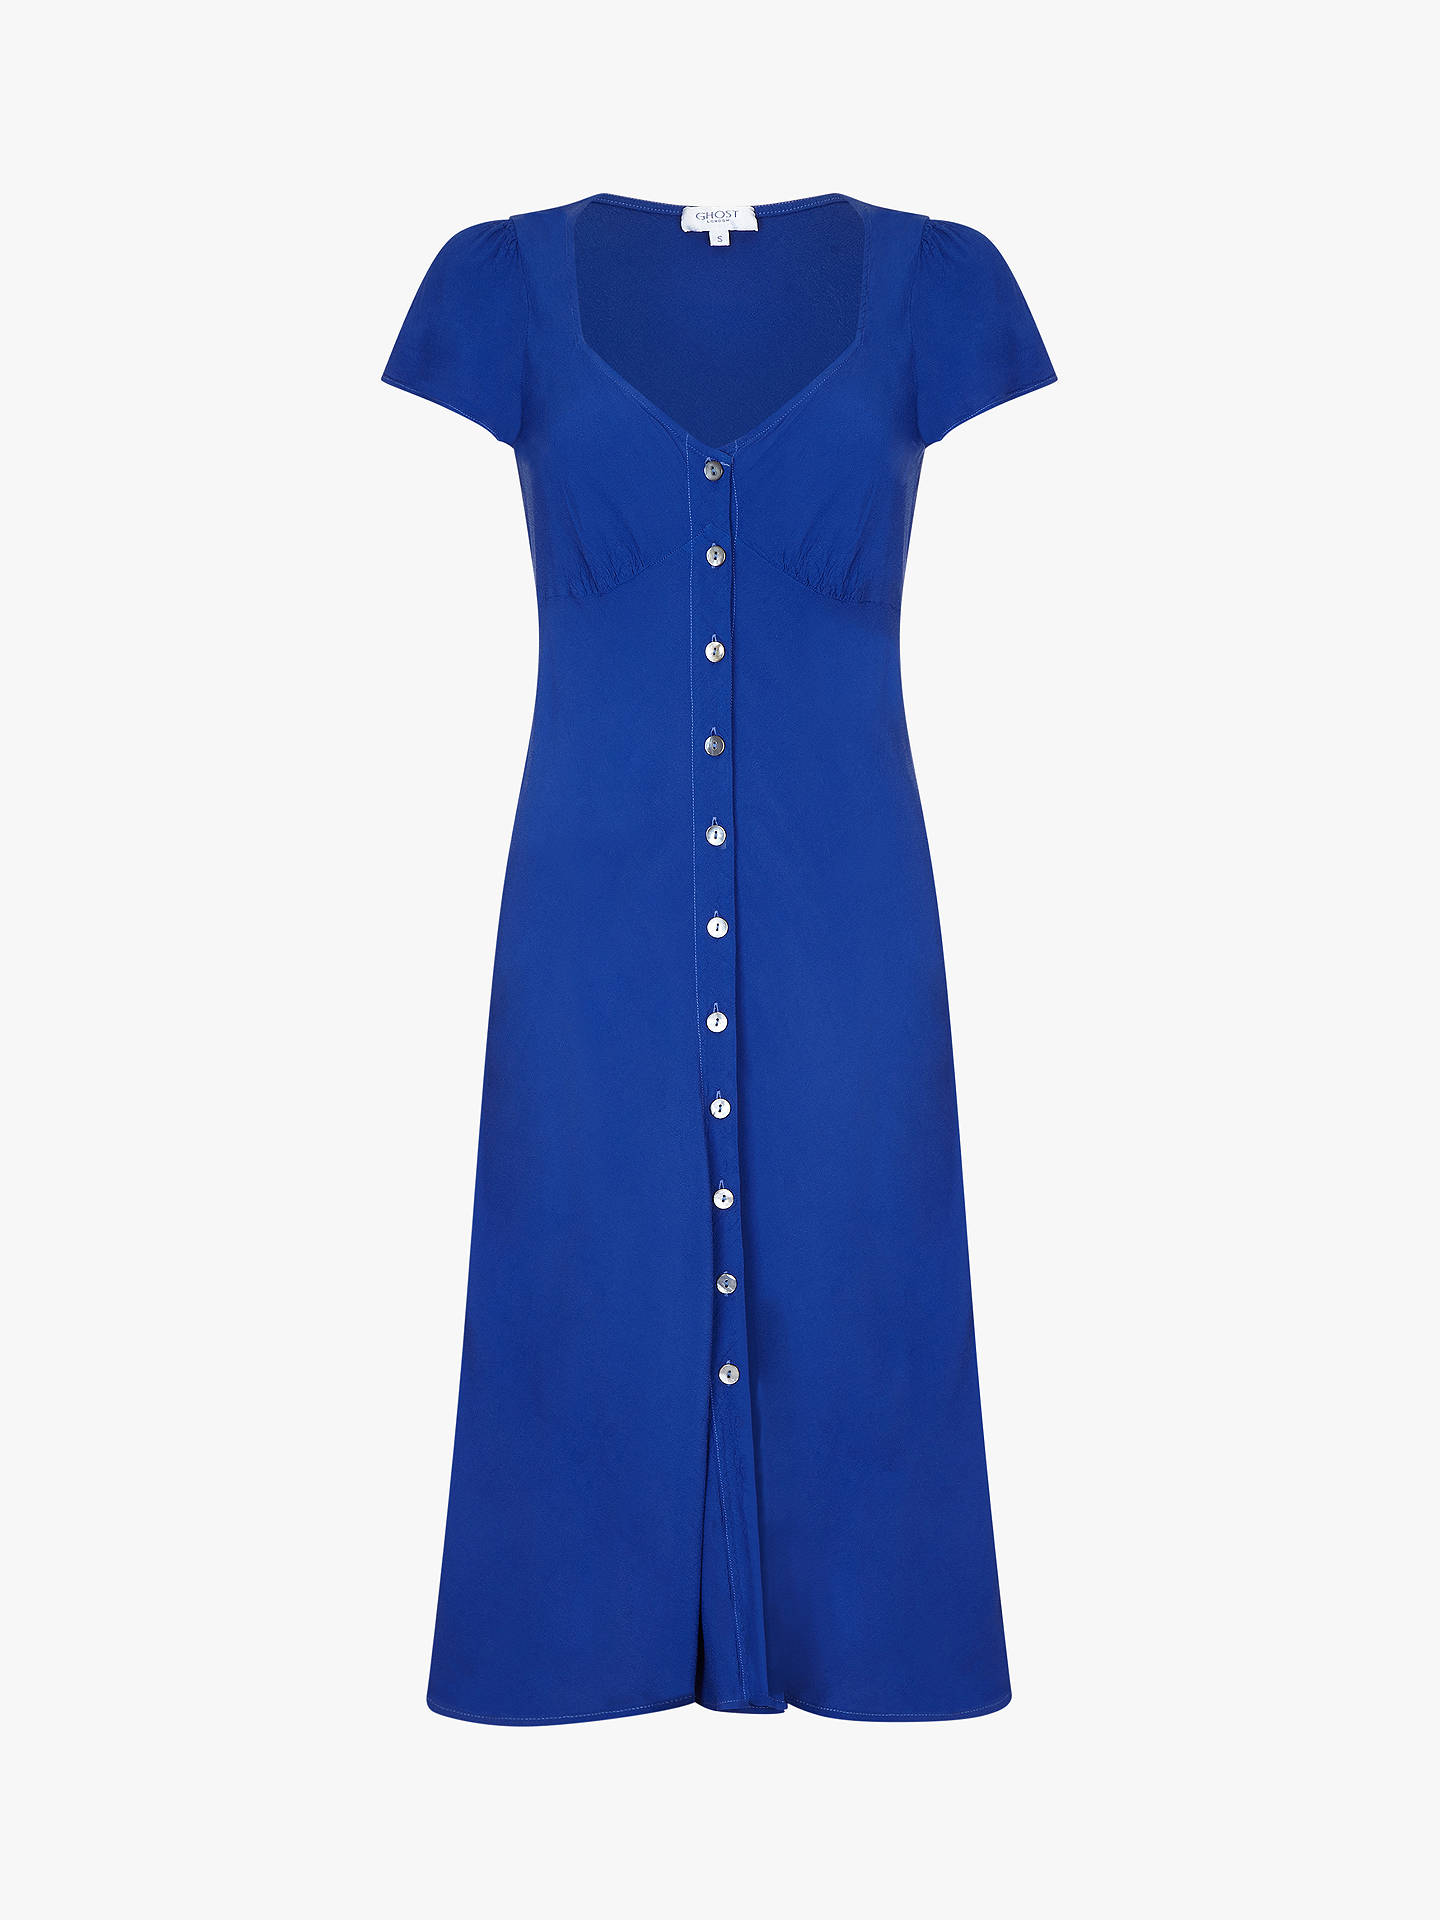 BuyGhost Leona Button Down Crepe Tea Dress, Blue, XS Online at johnlewis.com